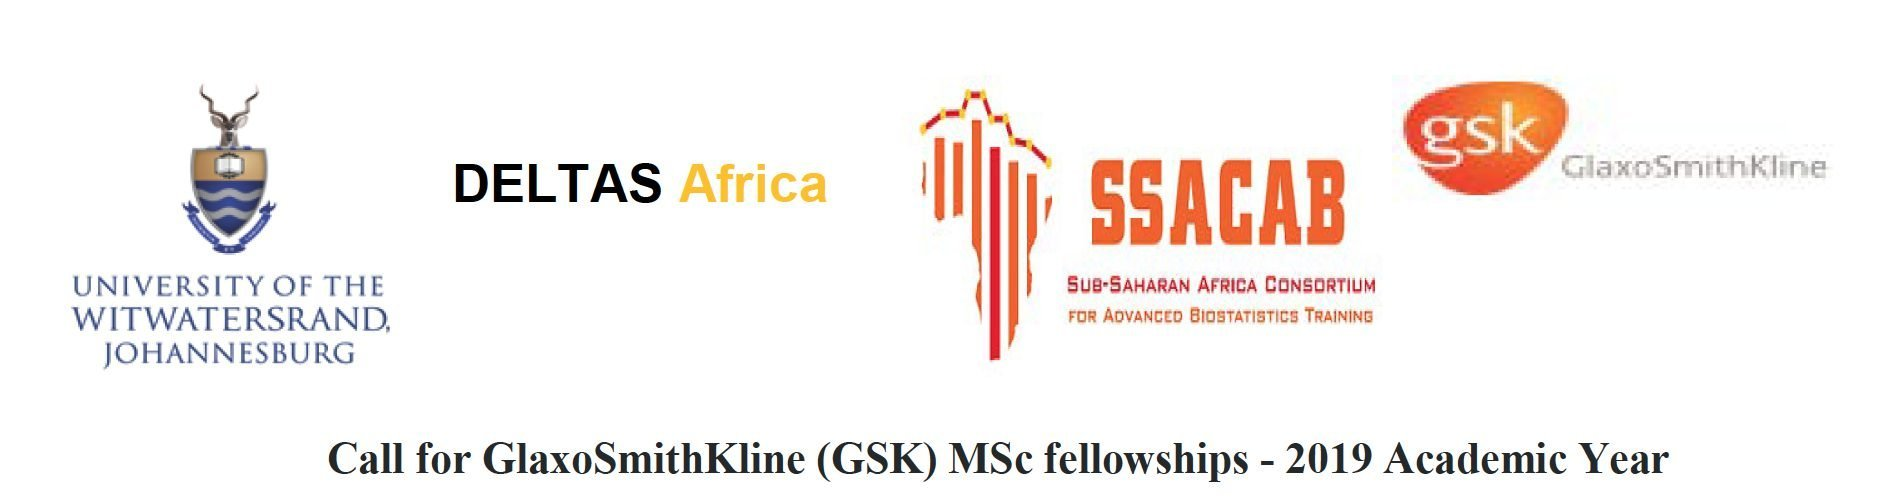 GlaxoSmithKline (GSK) MSc Fellowships